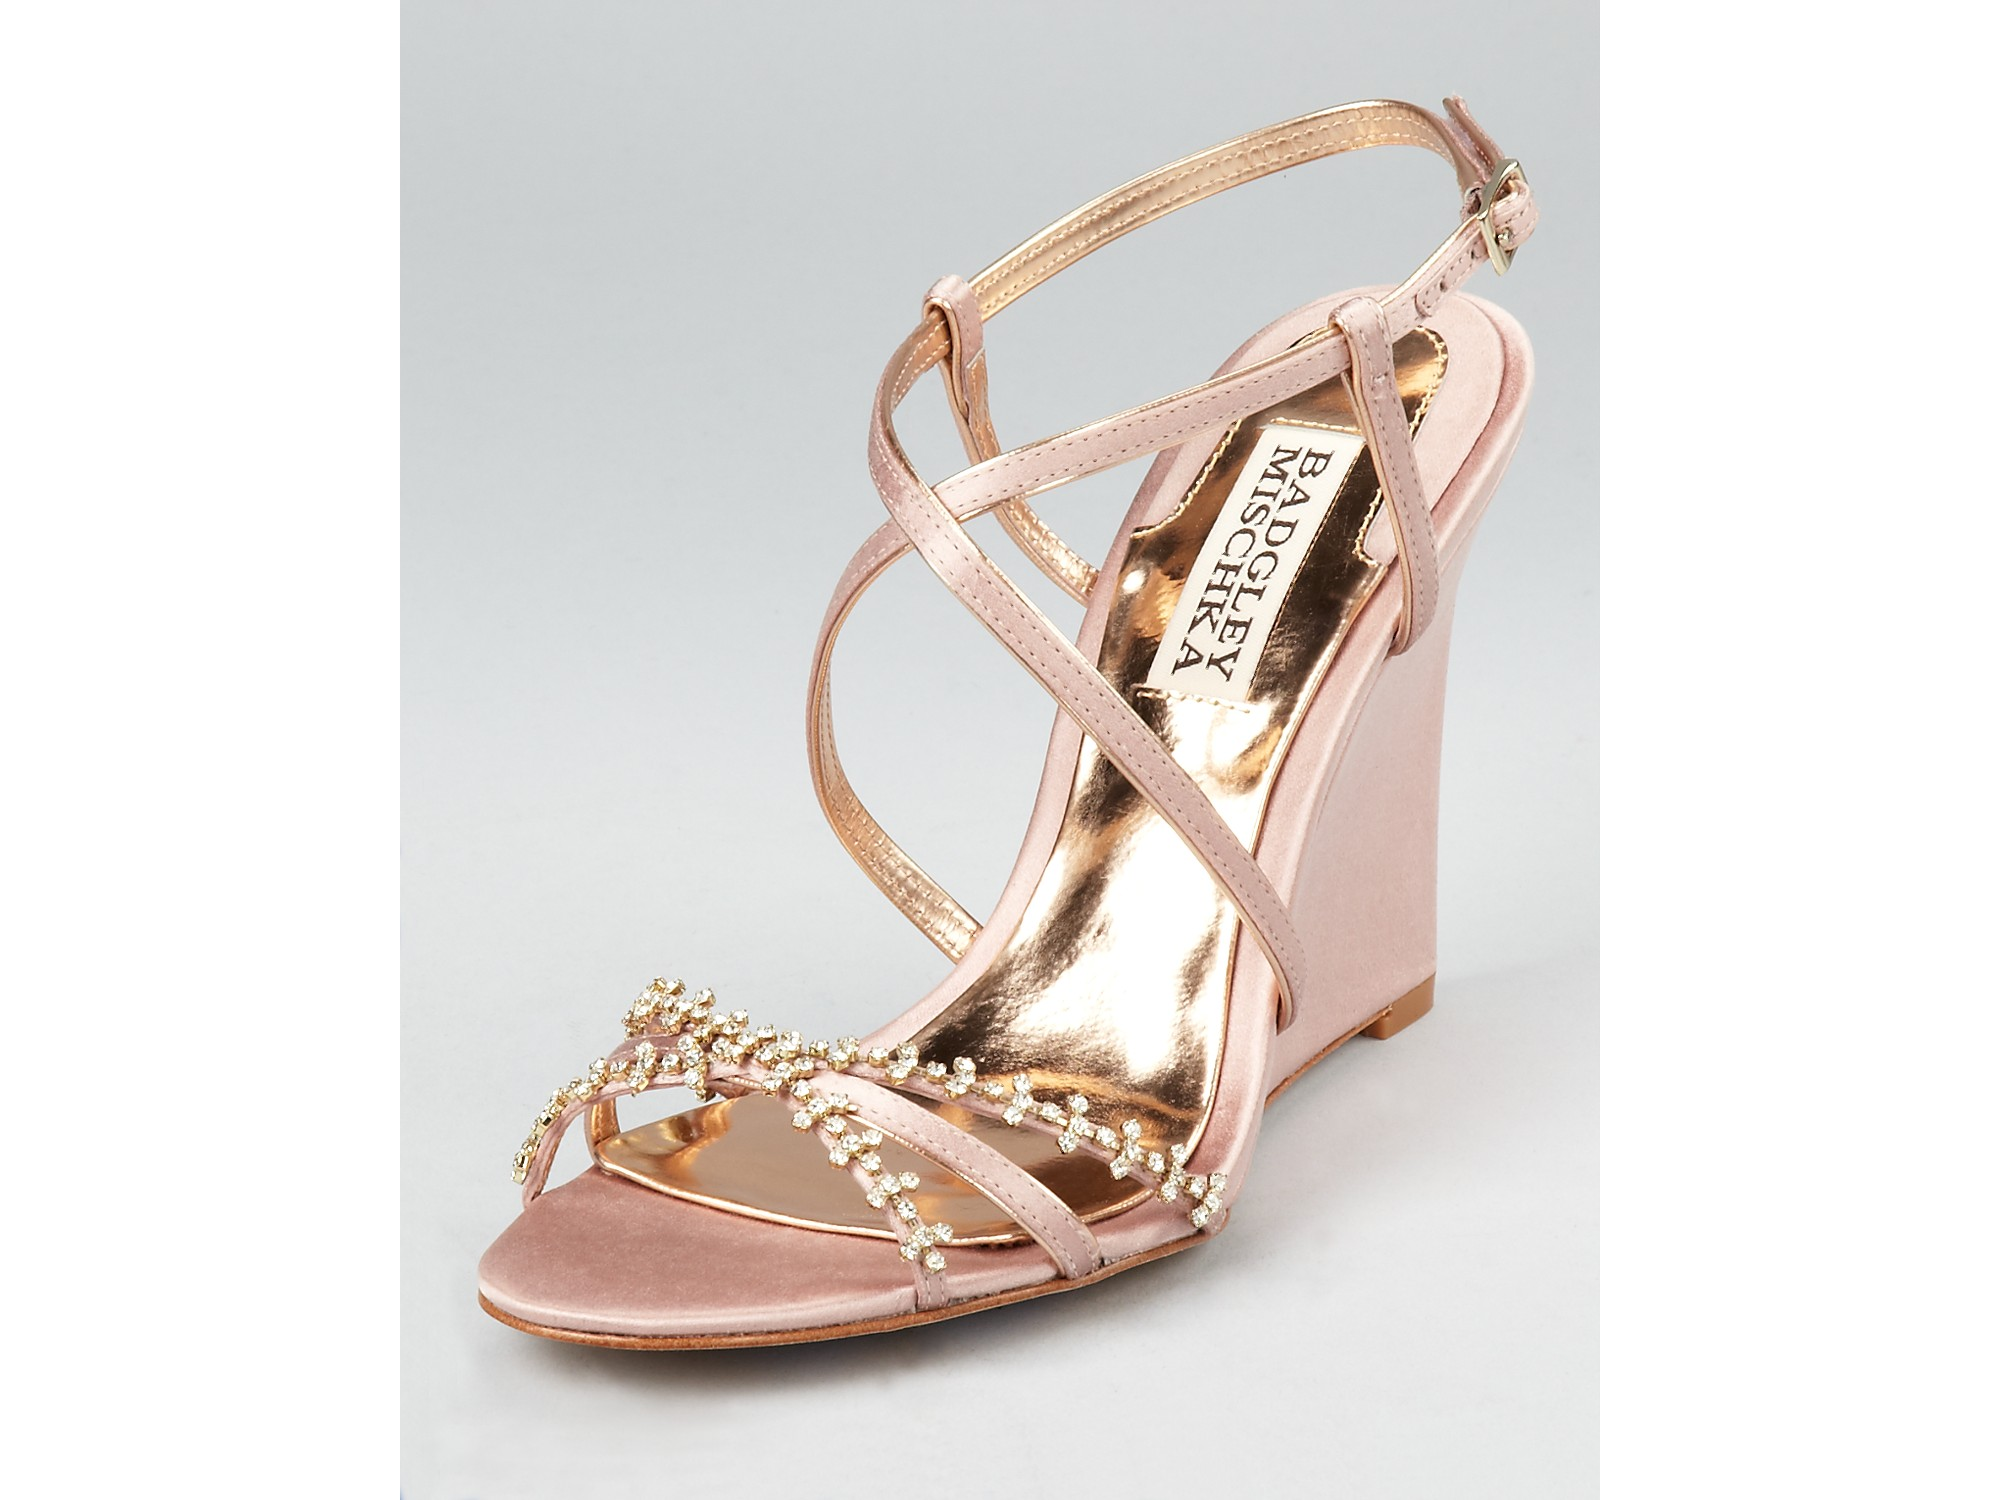 Badgley mischka Evening Sandals Gisele Wedge in Metallic